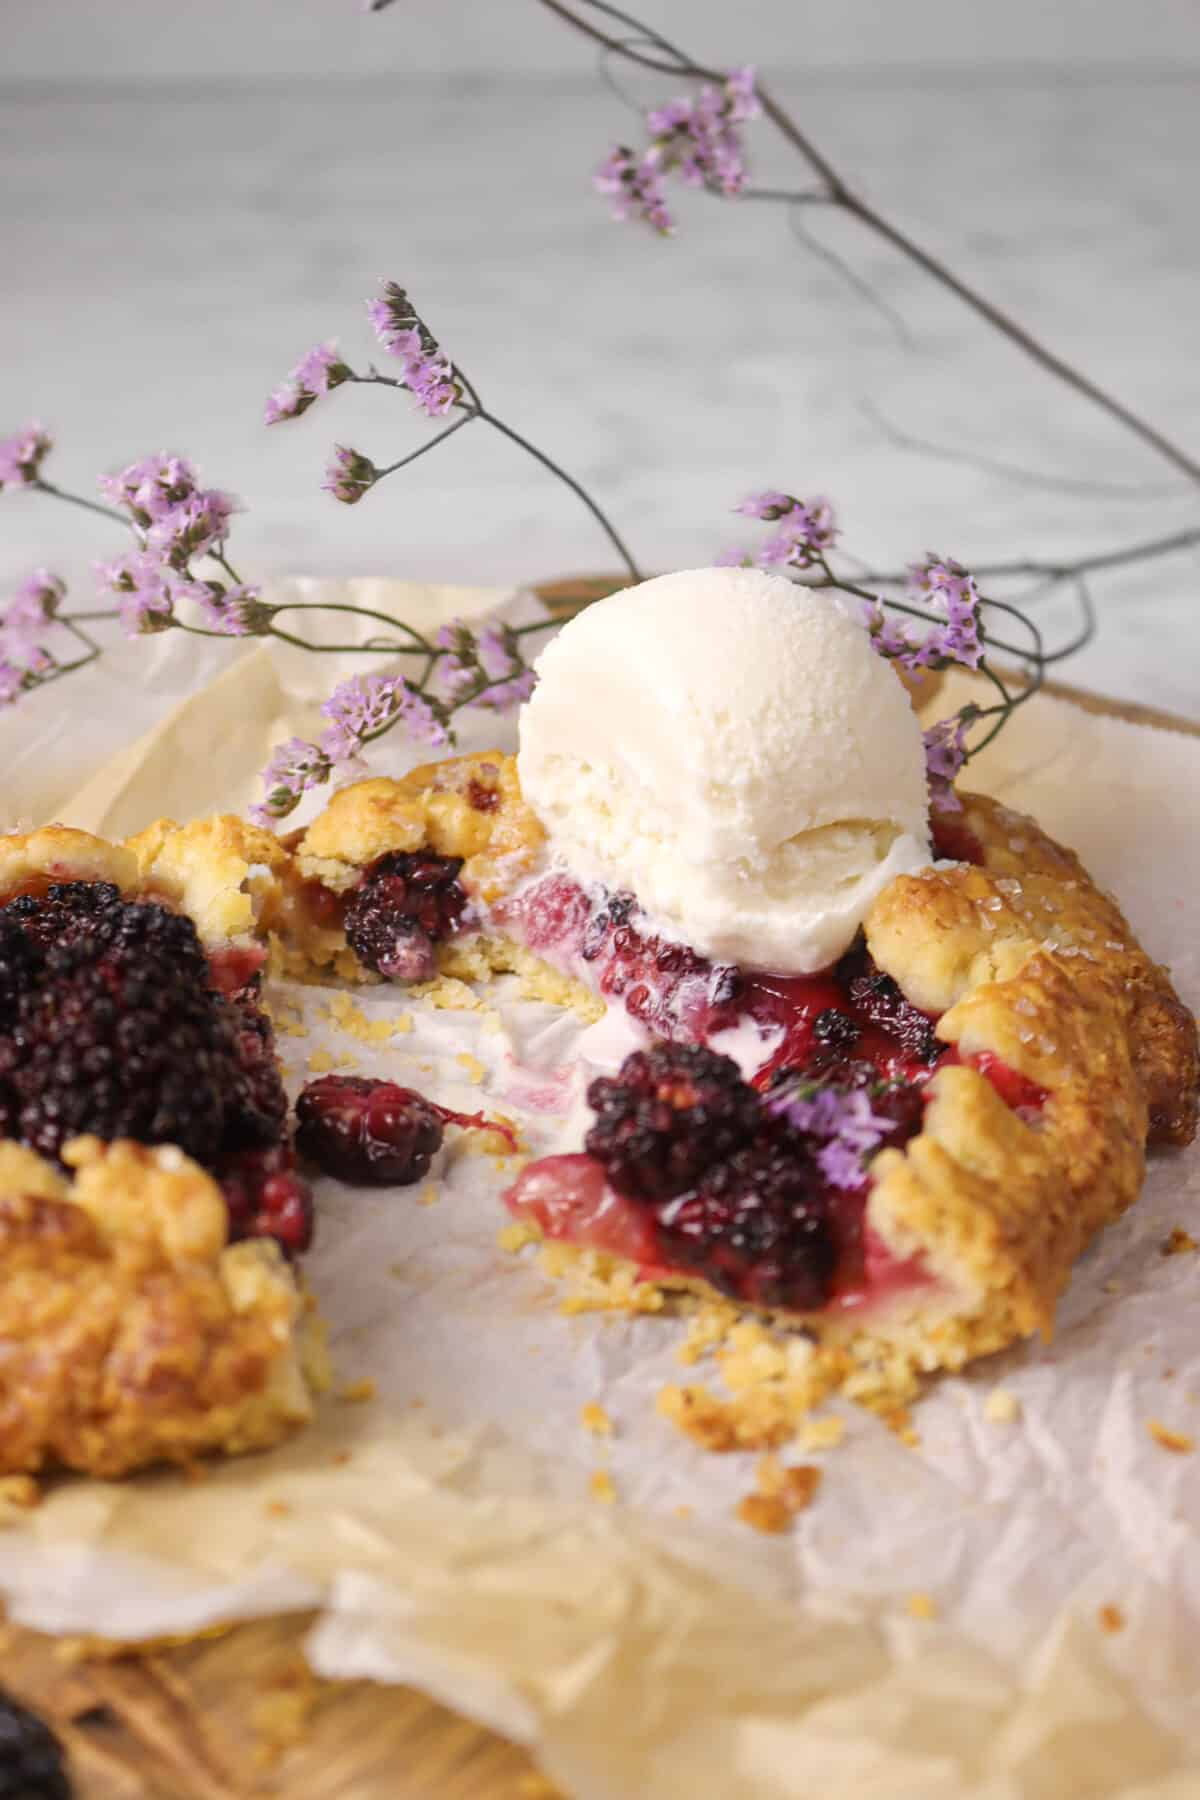 blackberry galette with a bite taken out of it with ice cream and flowers